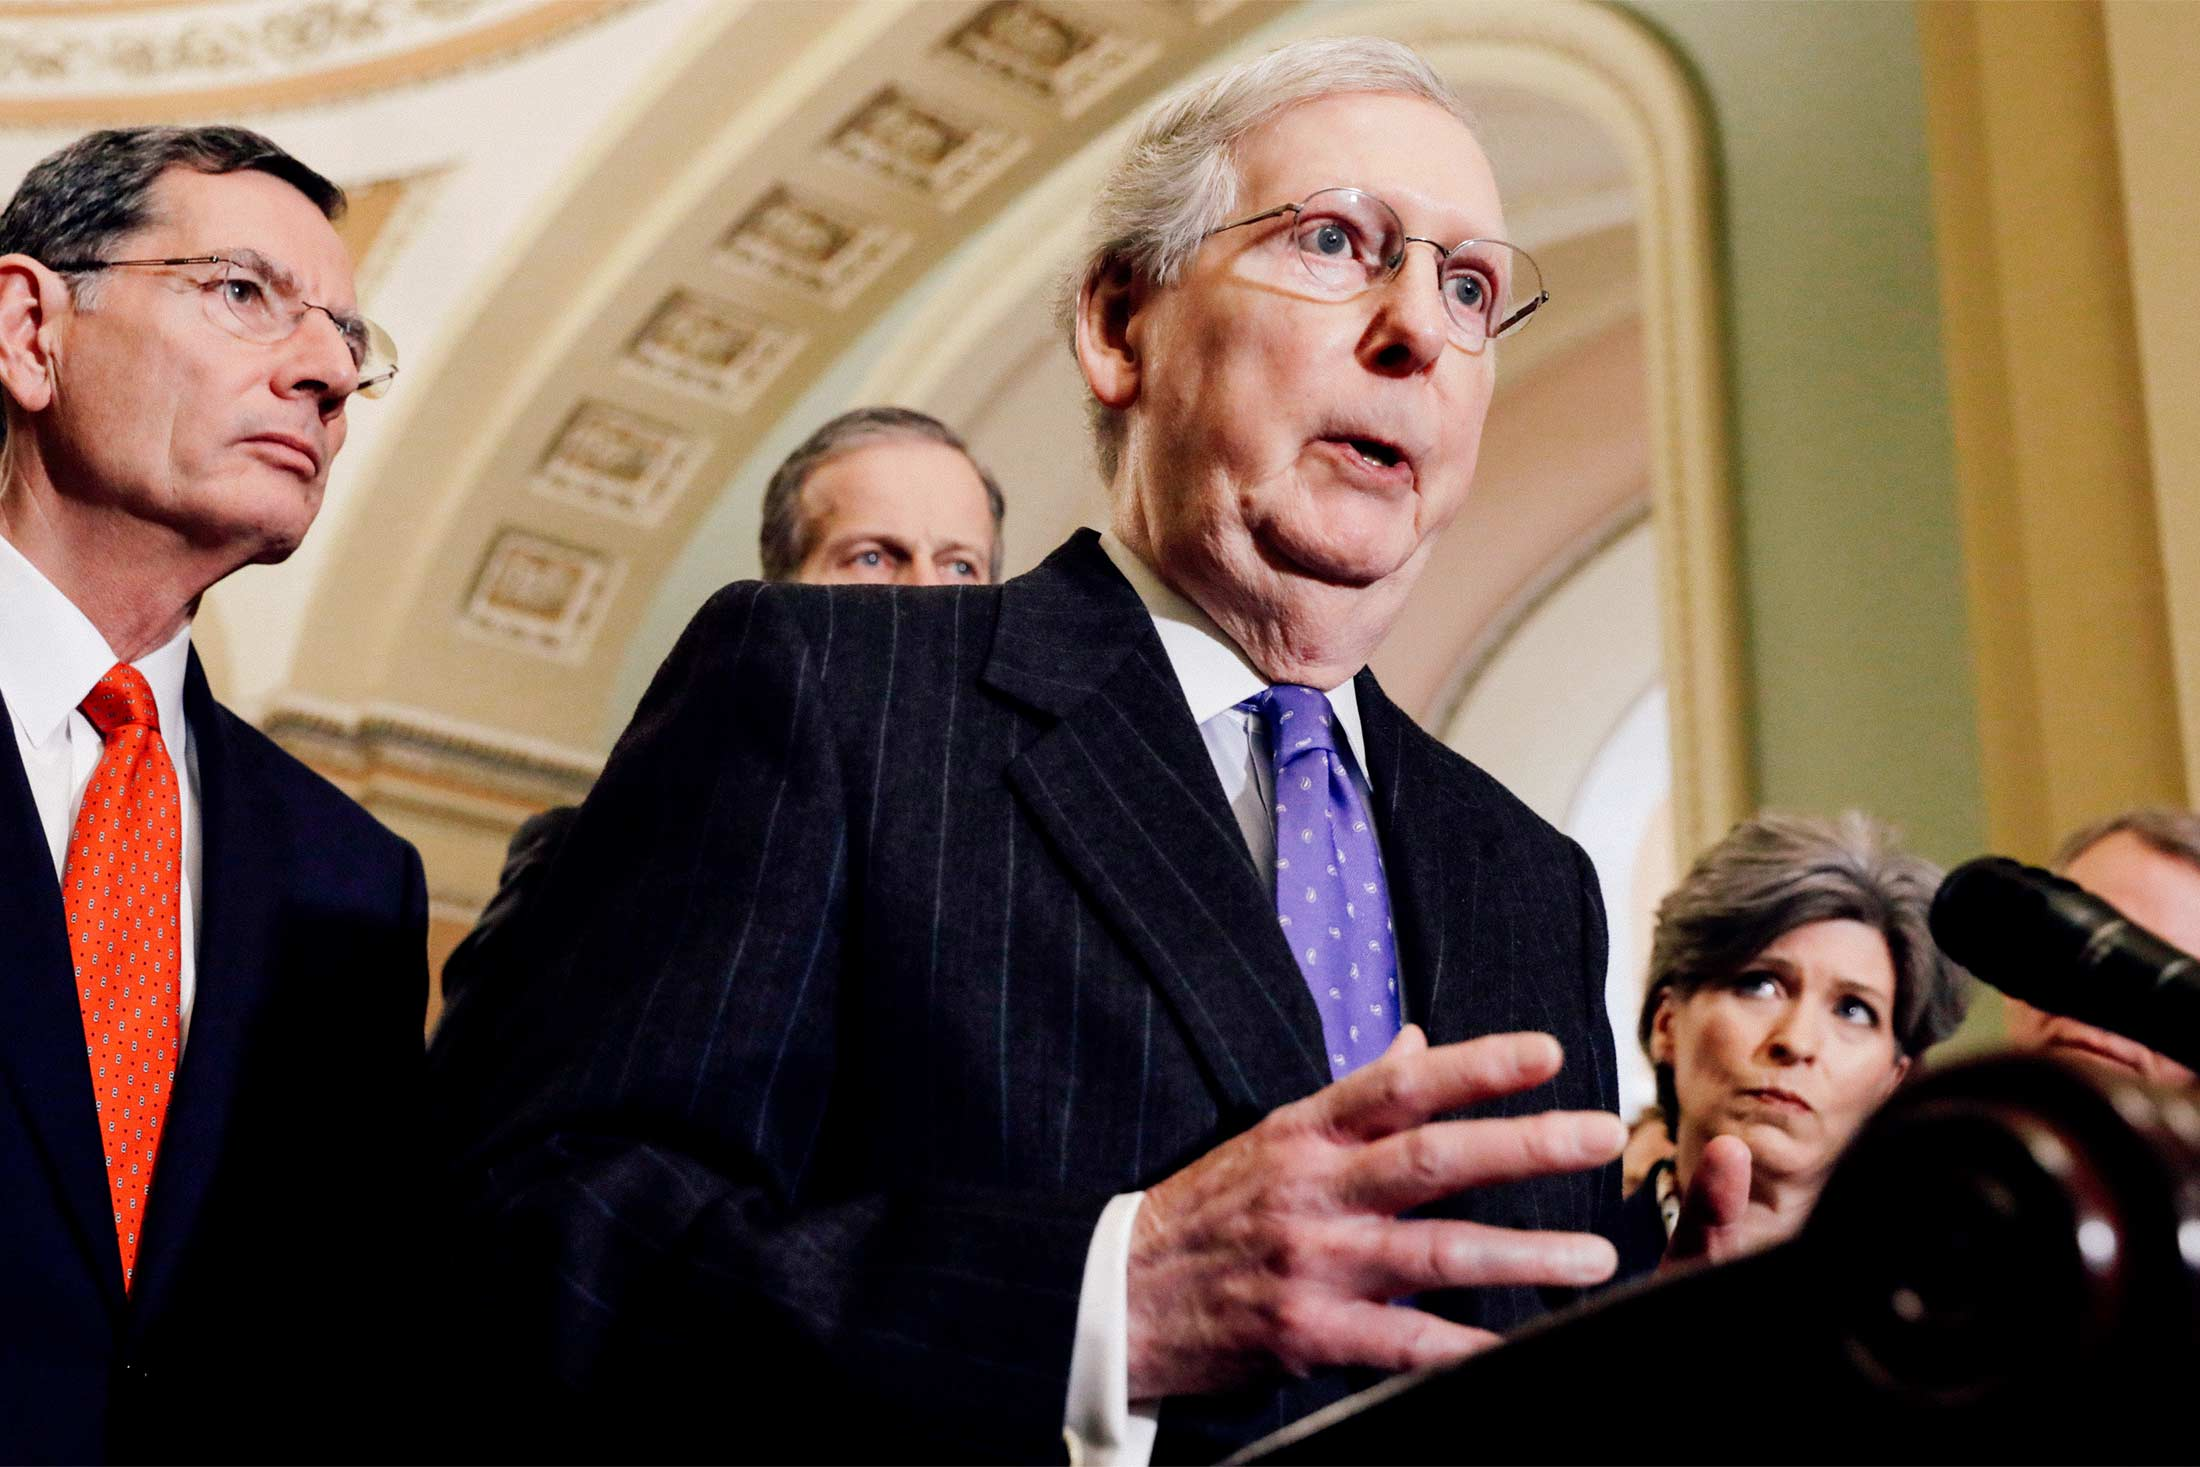 Mitch McConnell at a podium in the Capitol, surrounded by Republican senators and reporters.